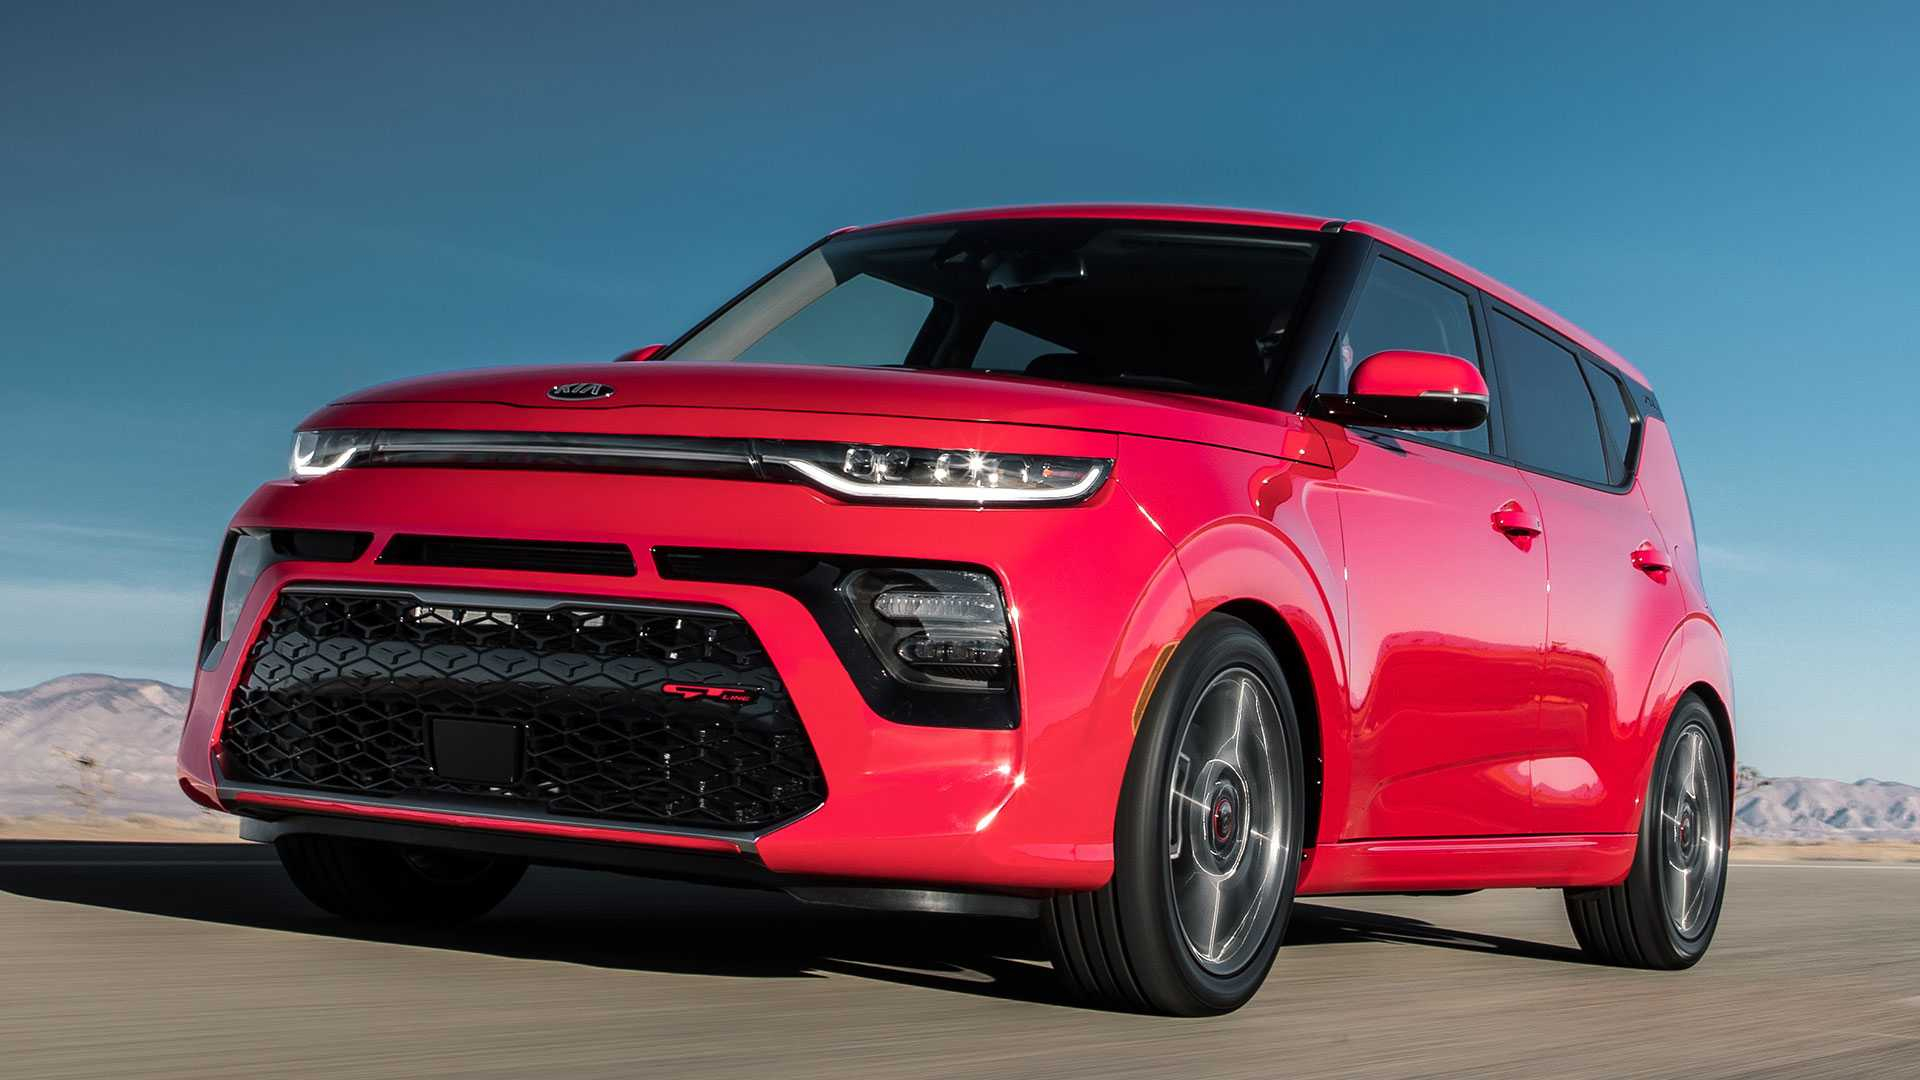 Most Expensive 2020 Kia Soul Costs $30,825 - 2022 Kia Soul Engine 2.0 L 4-Cylinder Release Date, Change